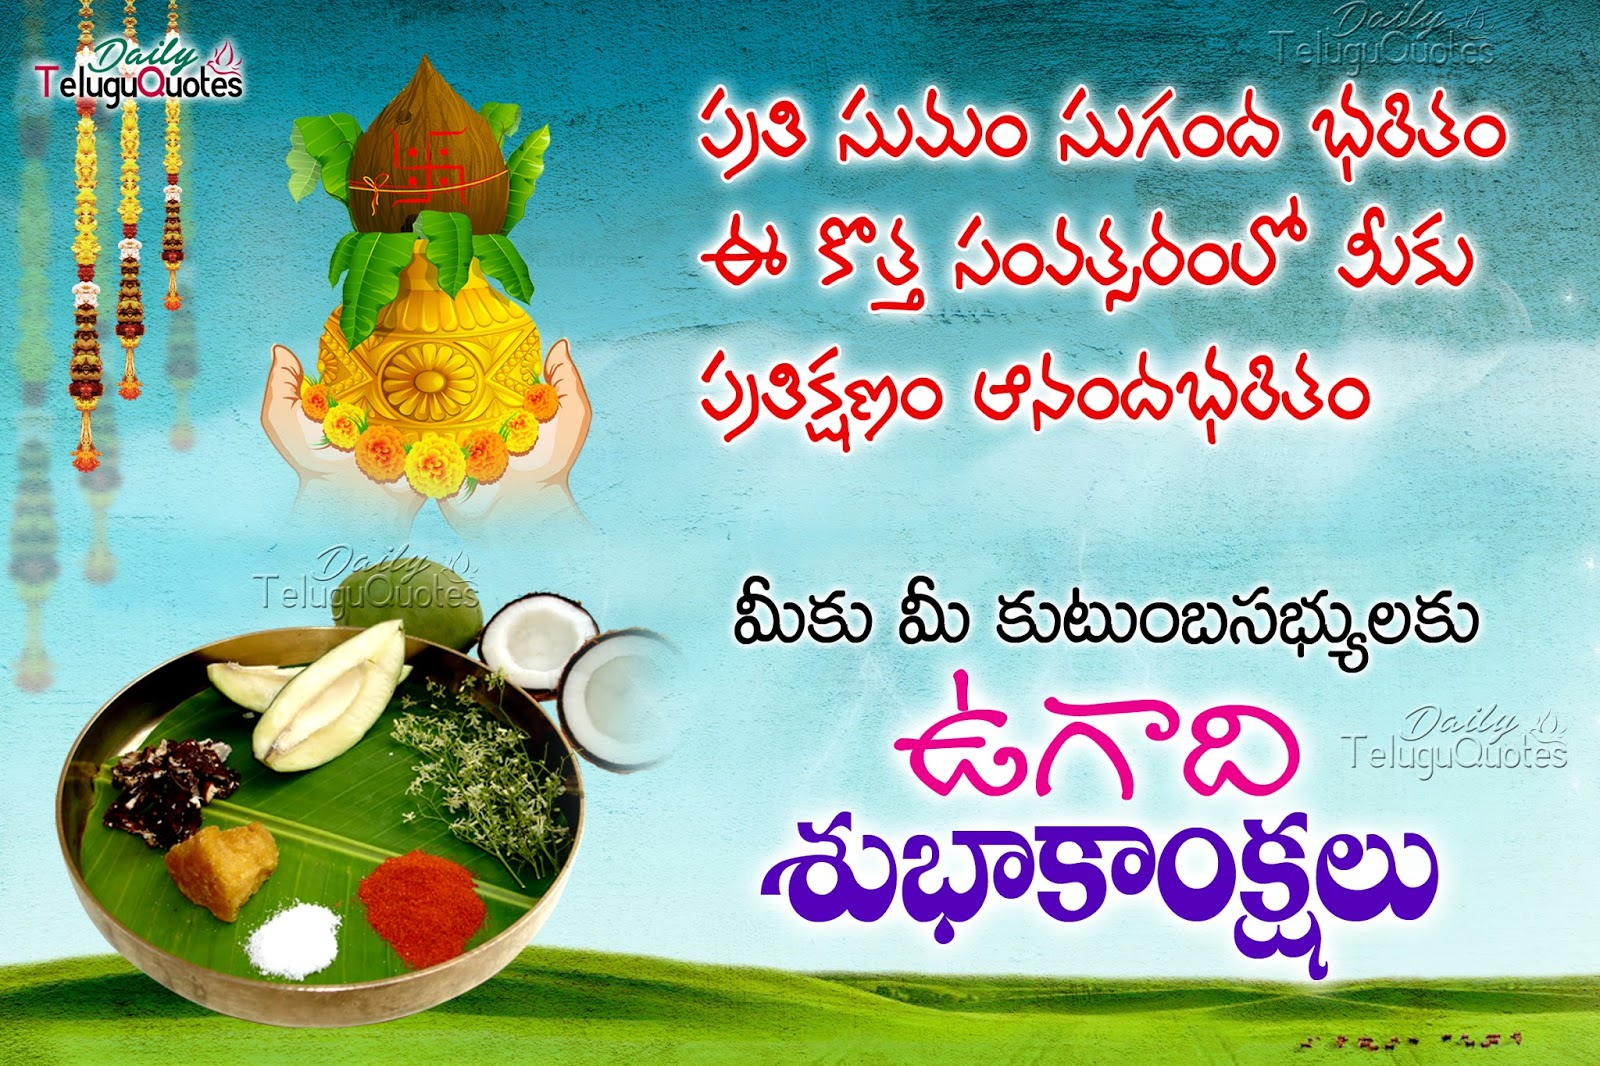 Telugu Ugadi 2017 Quotations Greetings Wishes Dailyteluguquotes